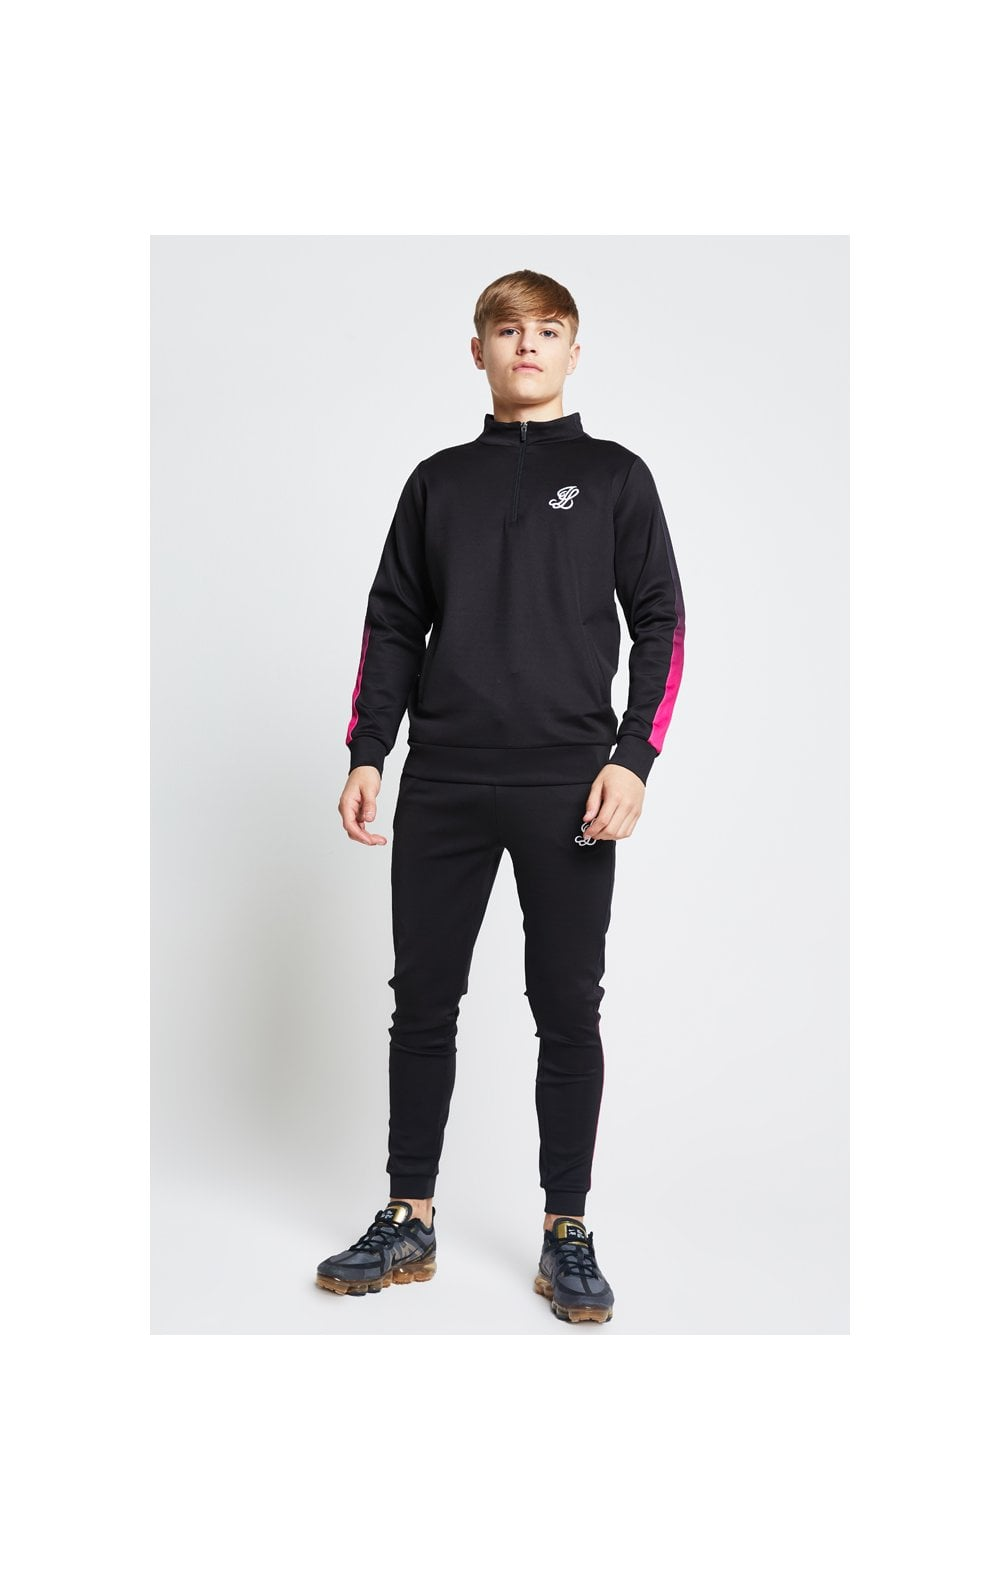 Load image into Gallery viewer, Illusive London Fade Panel Funnel Neck 1/4 Zip Hoodie - Black & Pink (3)